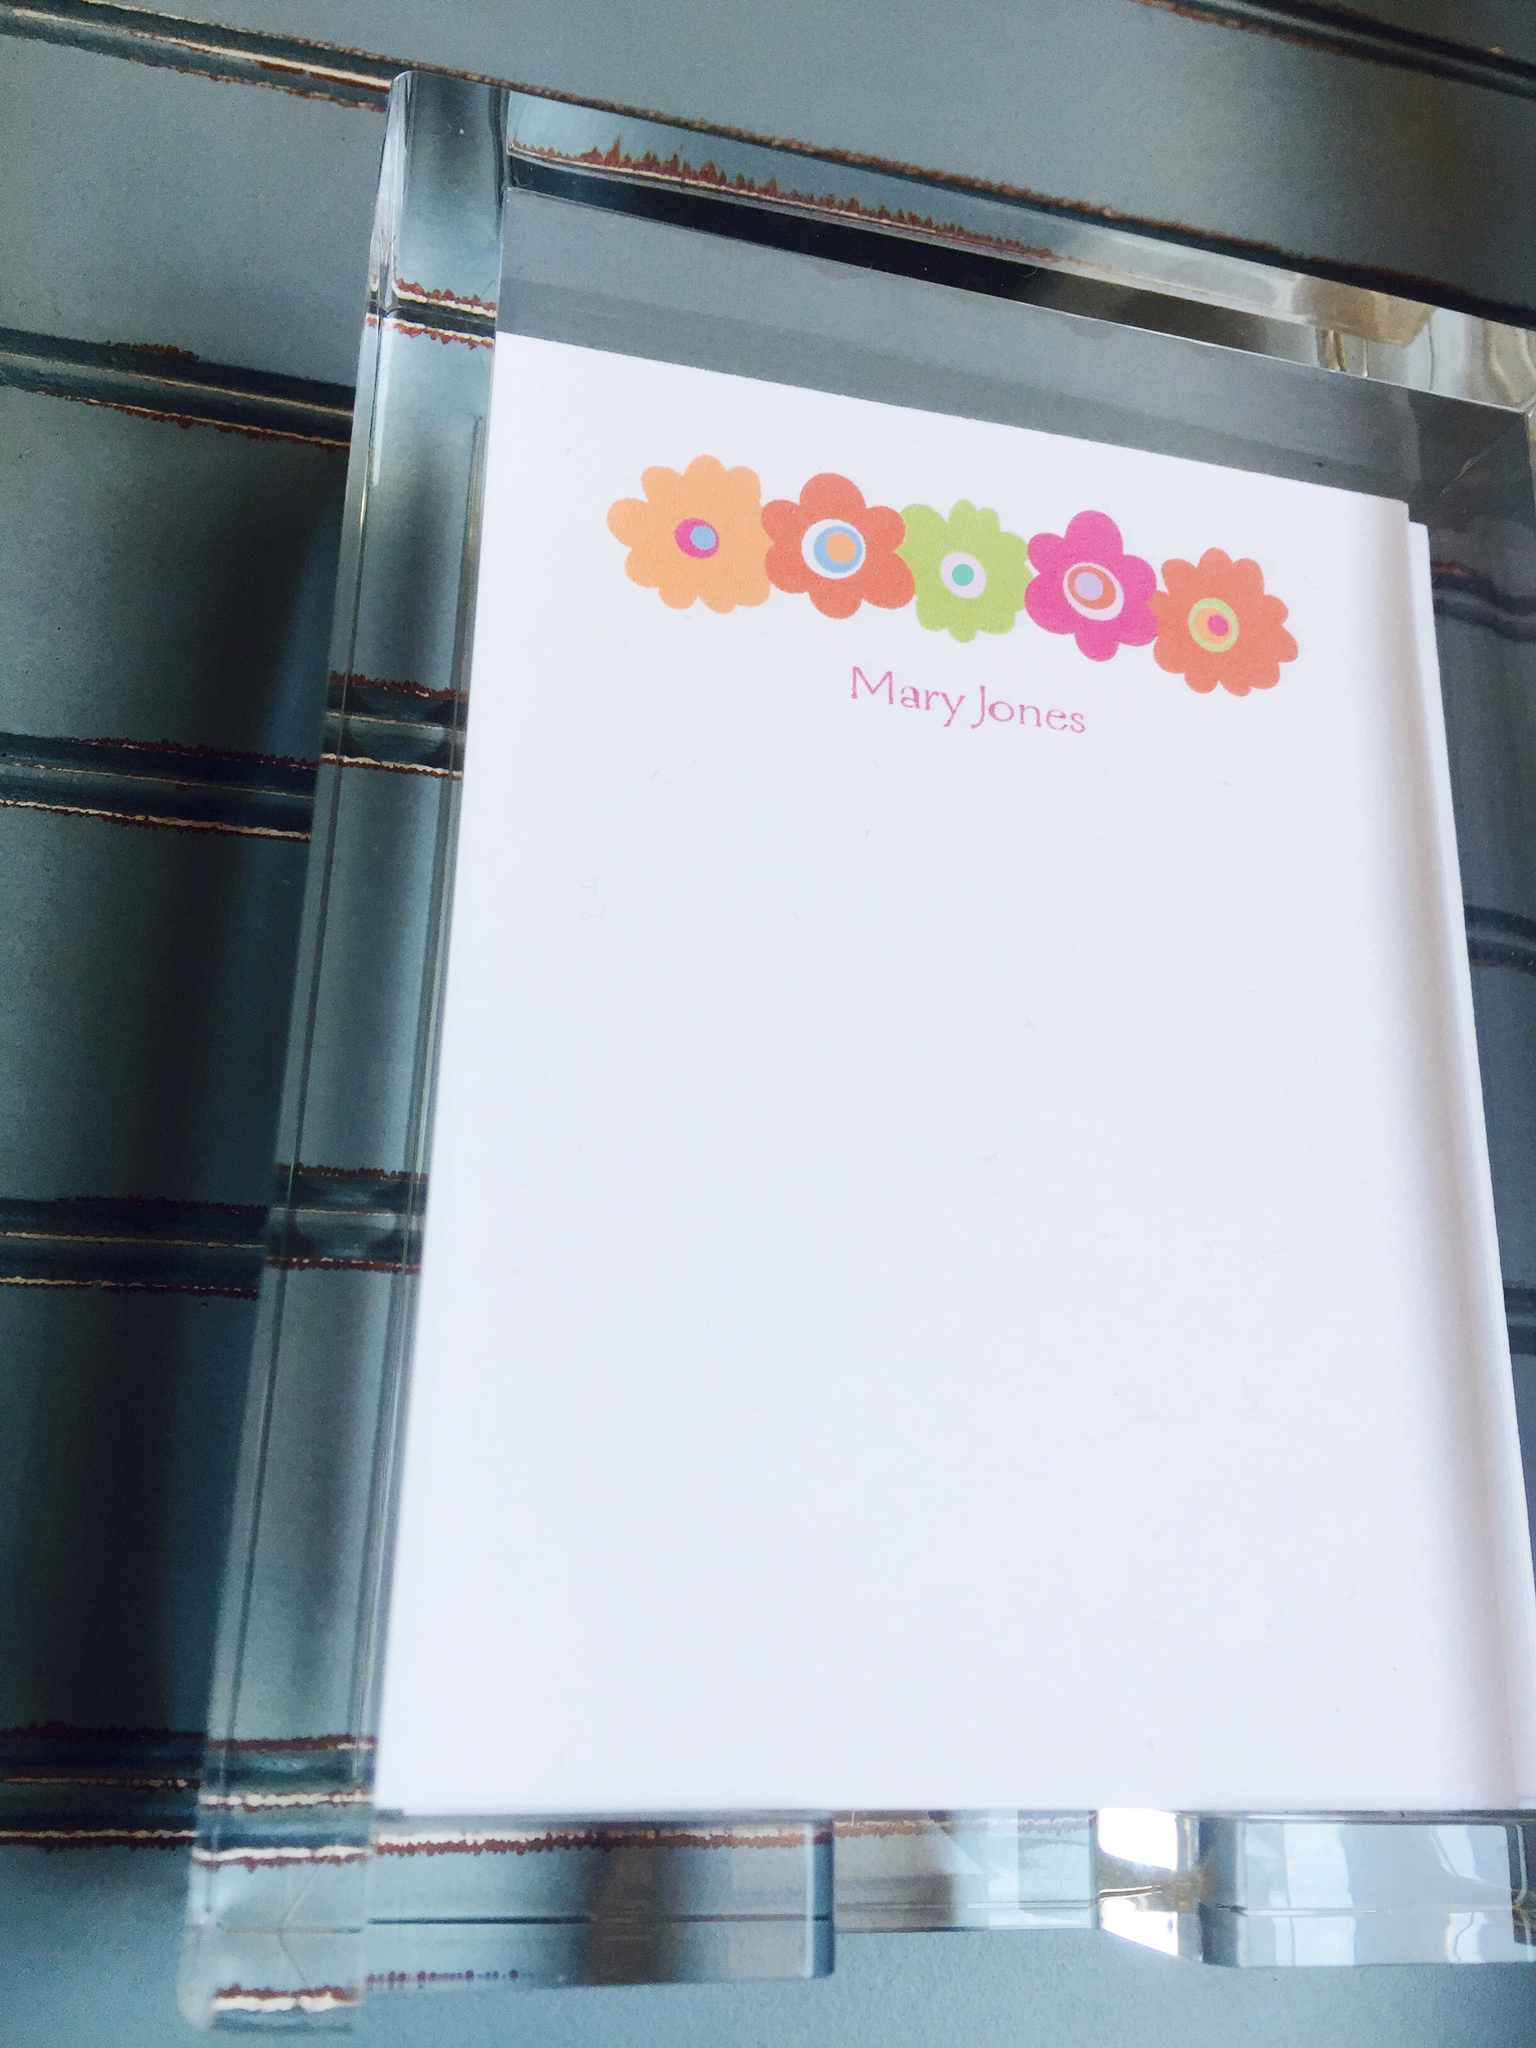 Acrylic Note Pad Holder with Note Pad